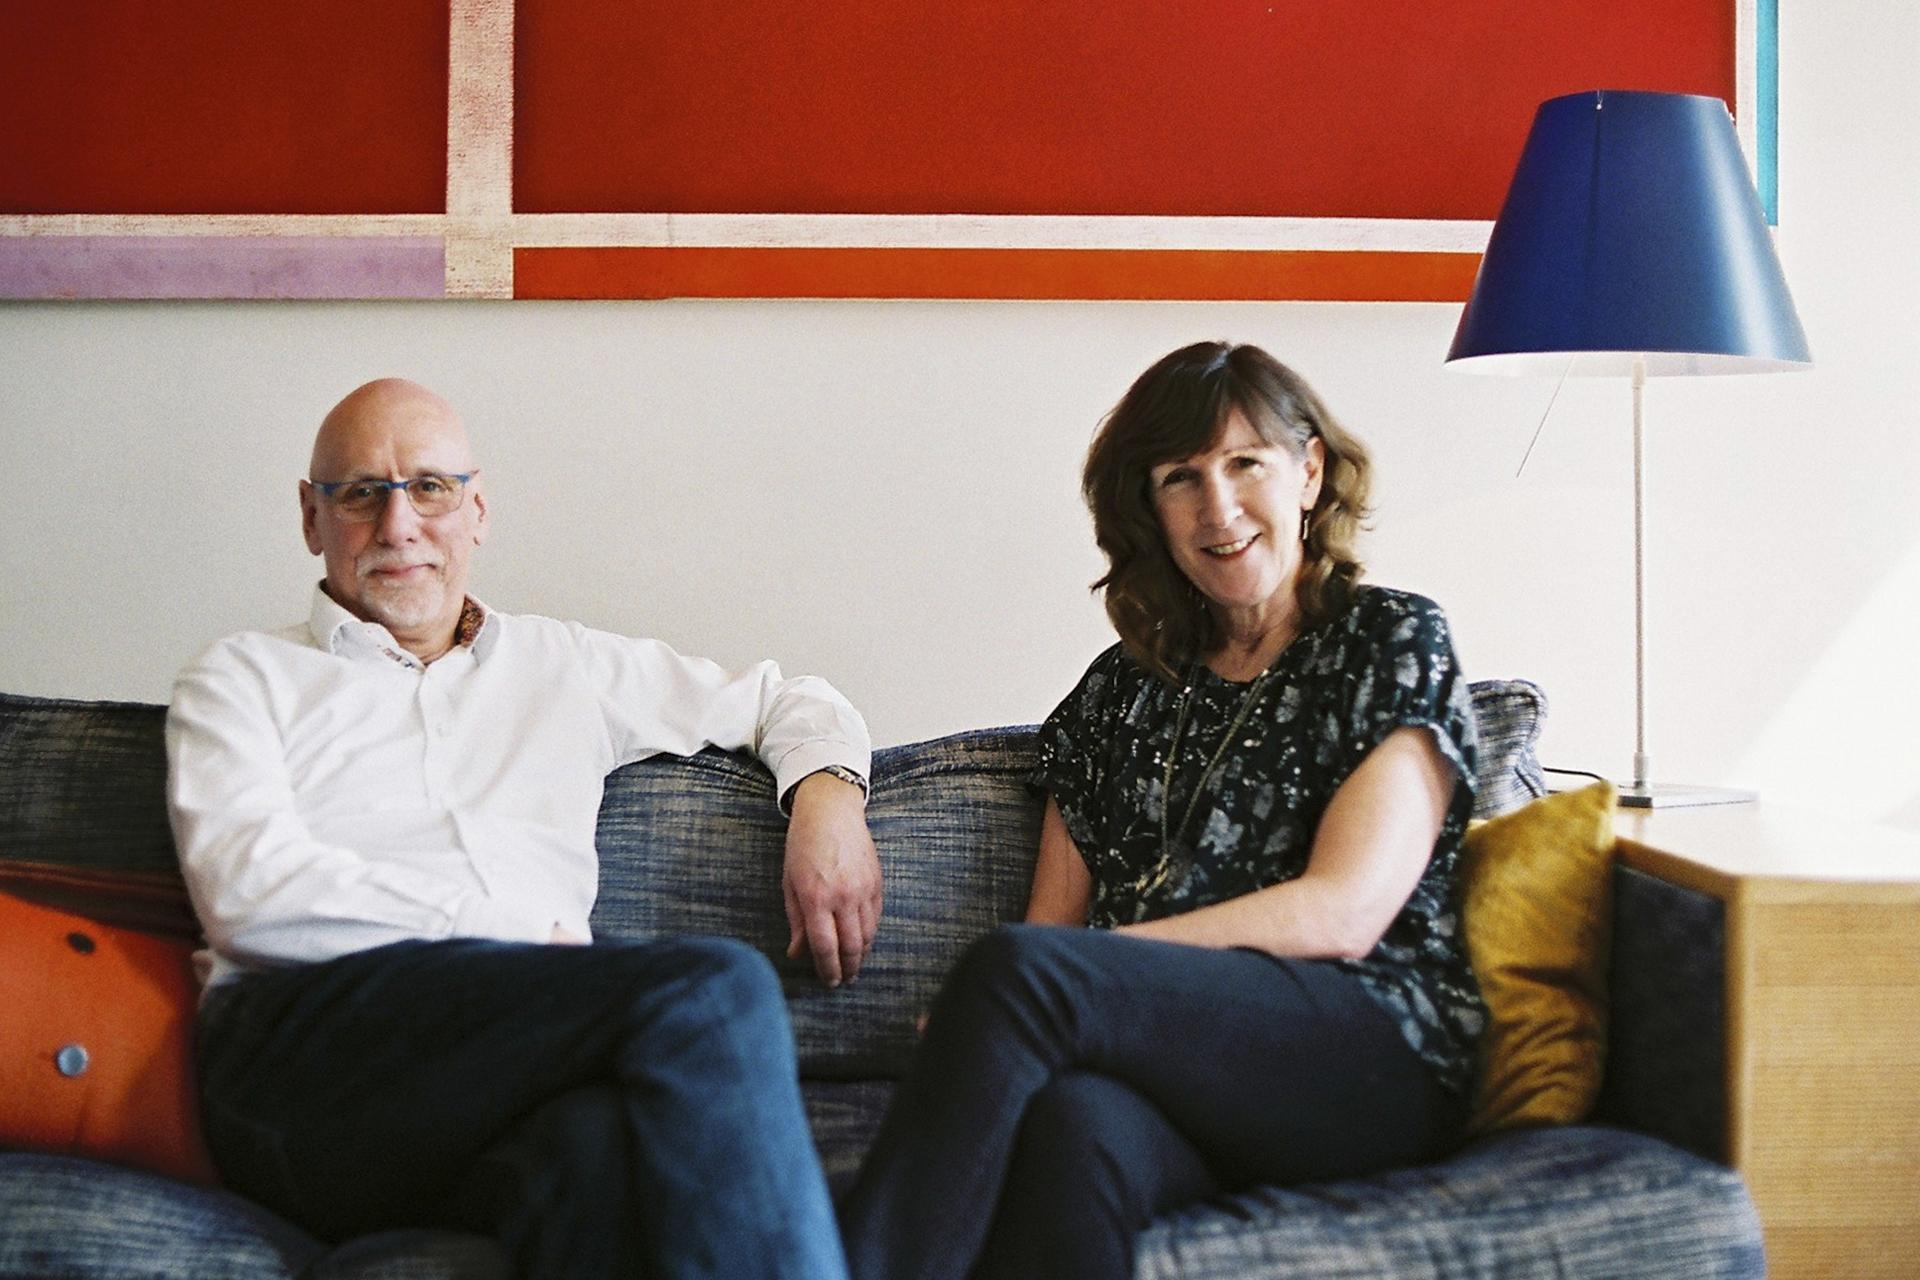 Next Chapter Retreats Co-founders Peter Hyson and Hilary Rowland